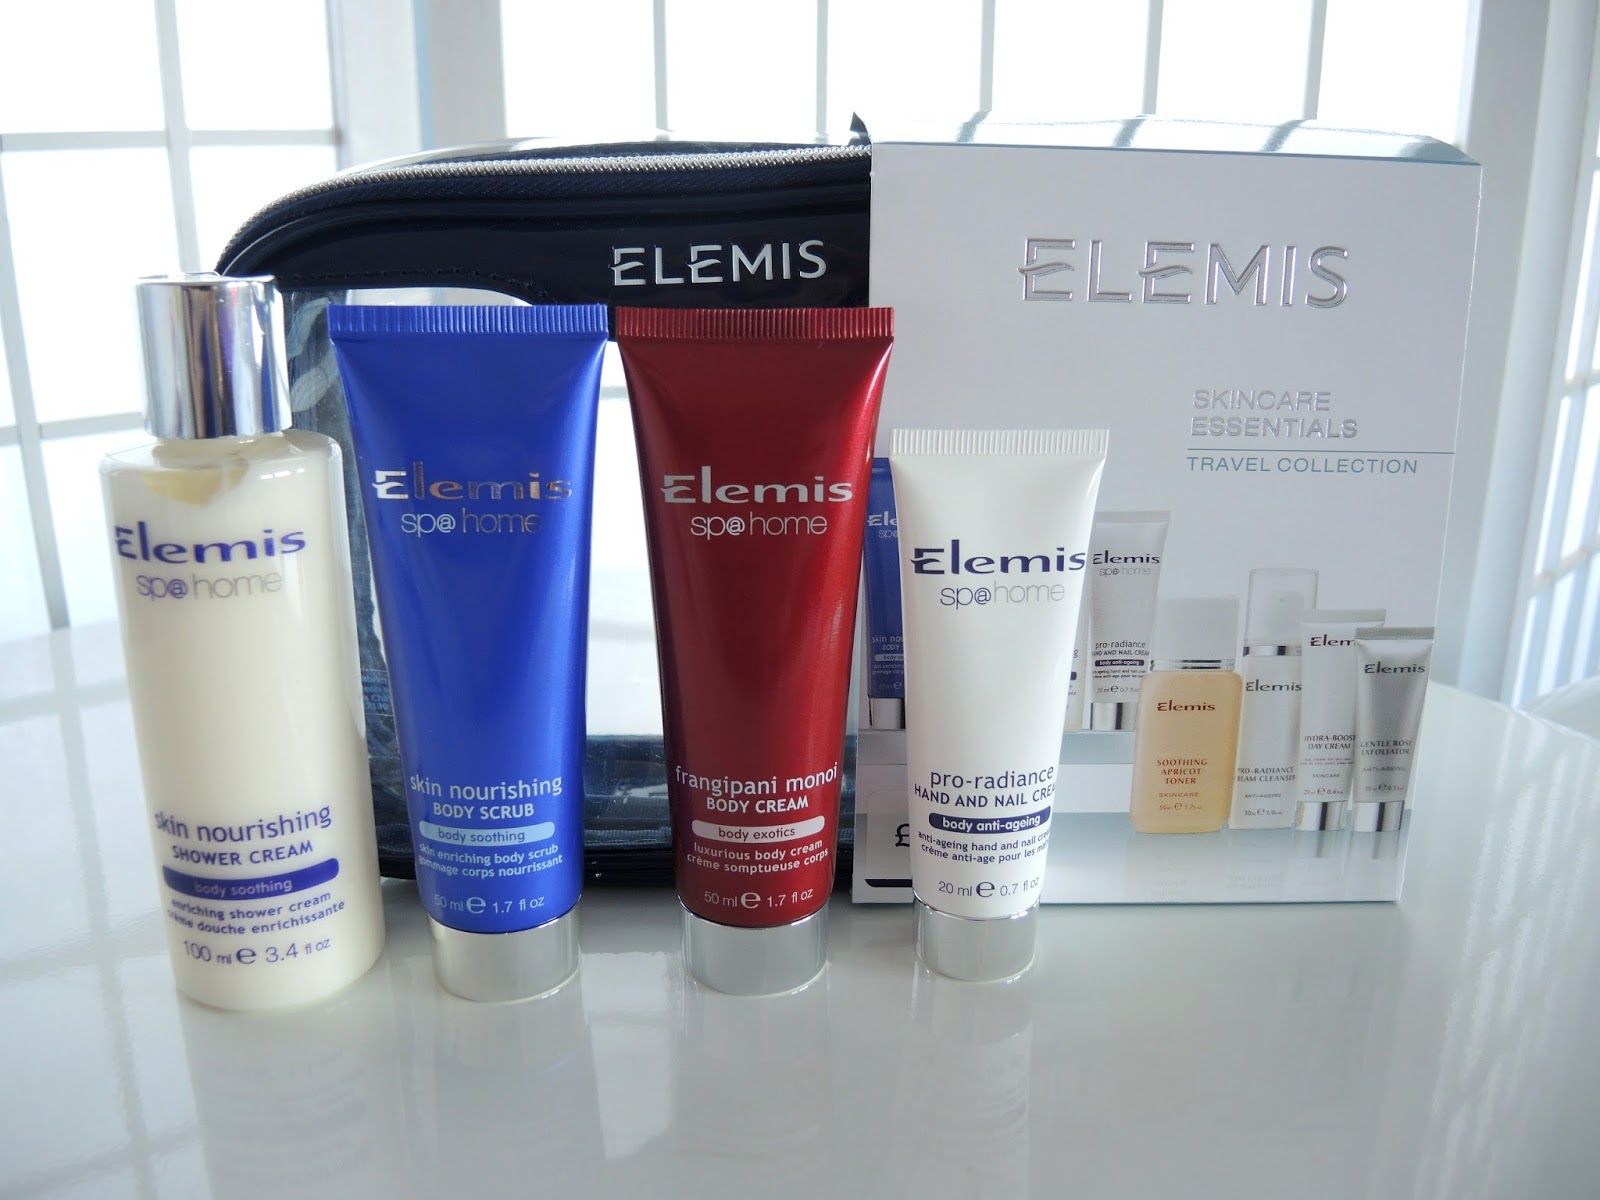 Elemis Skincare Essentials review